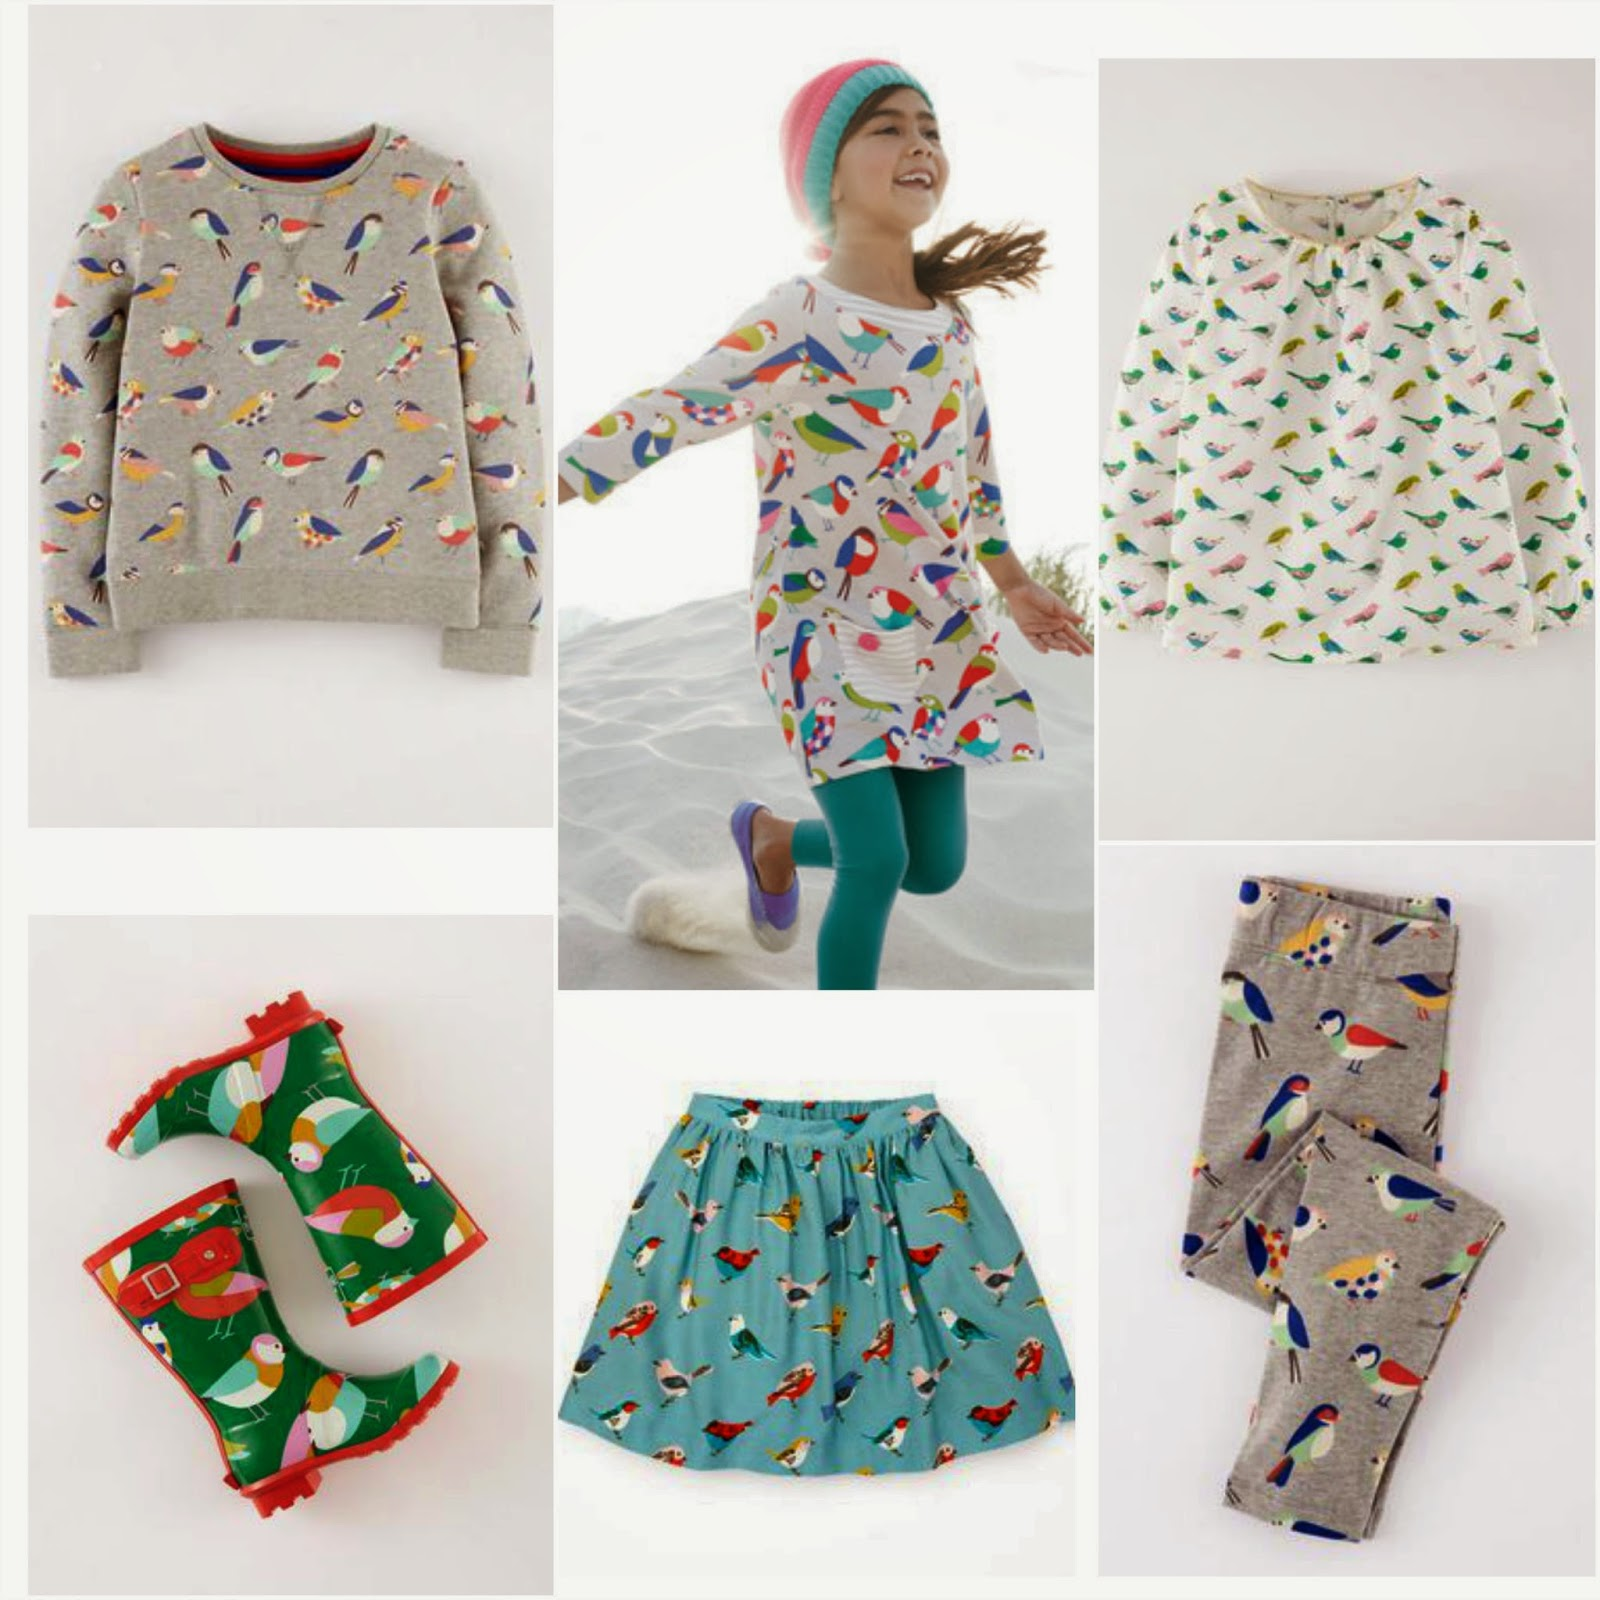 Boden Kids clothing sale now on with up to 70% off! Huge discounts on Girls clothing, Boys clothes, Baby clothing and more from the biggest online sales & clearance outlet. Boden Kids clothing sale now on with up to 70% off! Huge discounts on Girls clothing, Boys clothes, Baby clothing and more from the biggest online sales & clearance outlet.